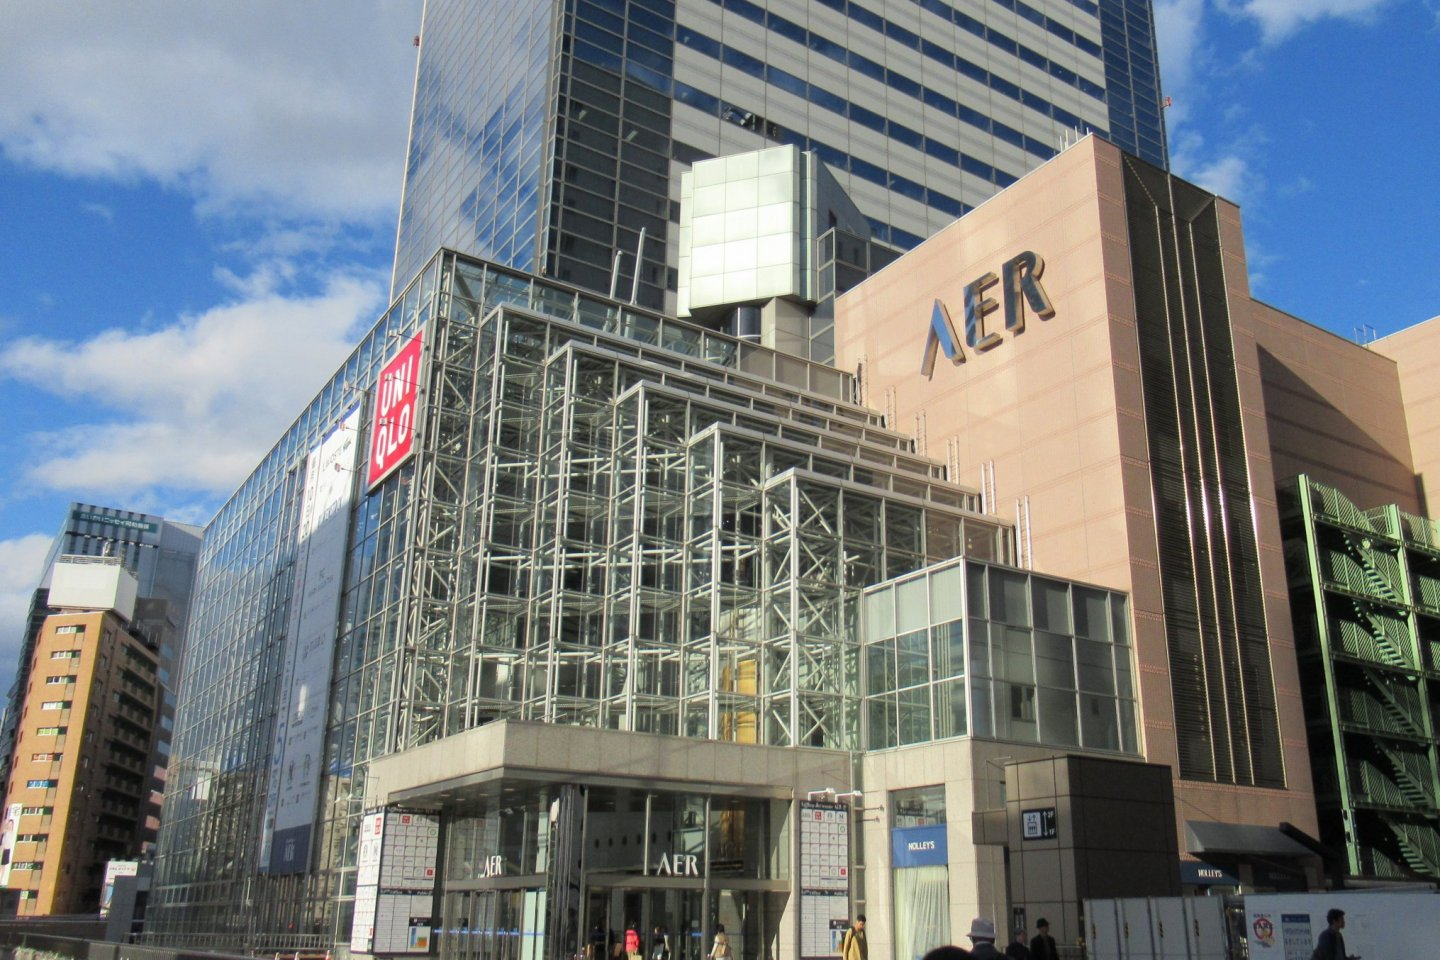 Uniqlo in Sendai\'s AER Building